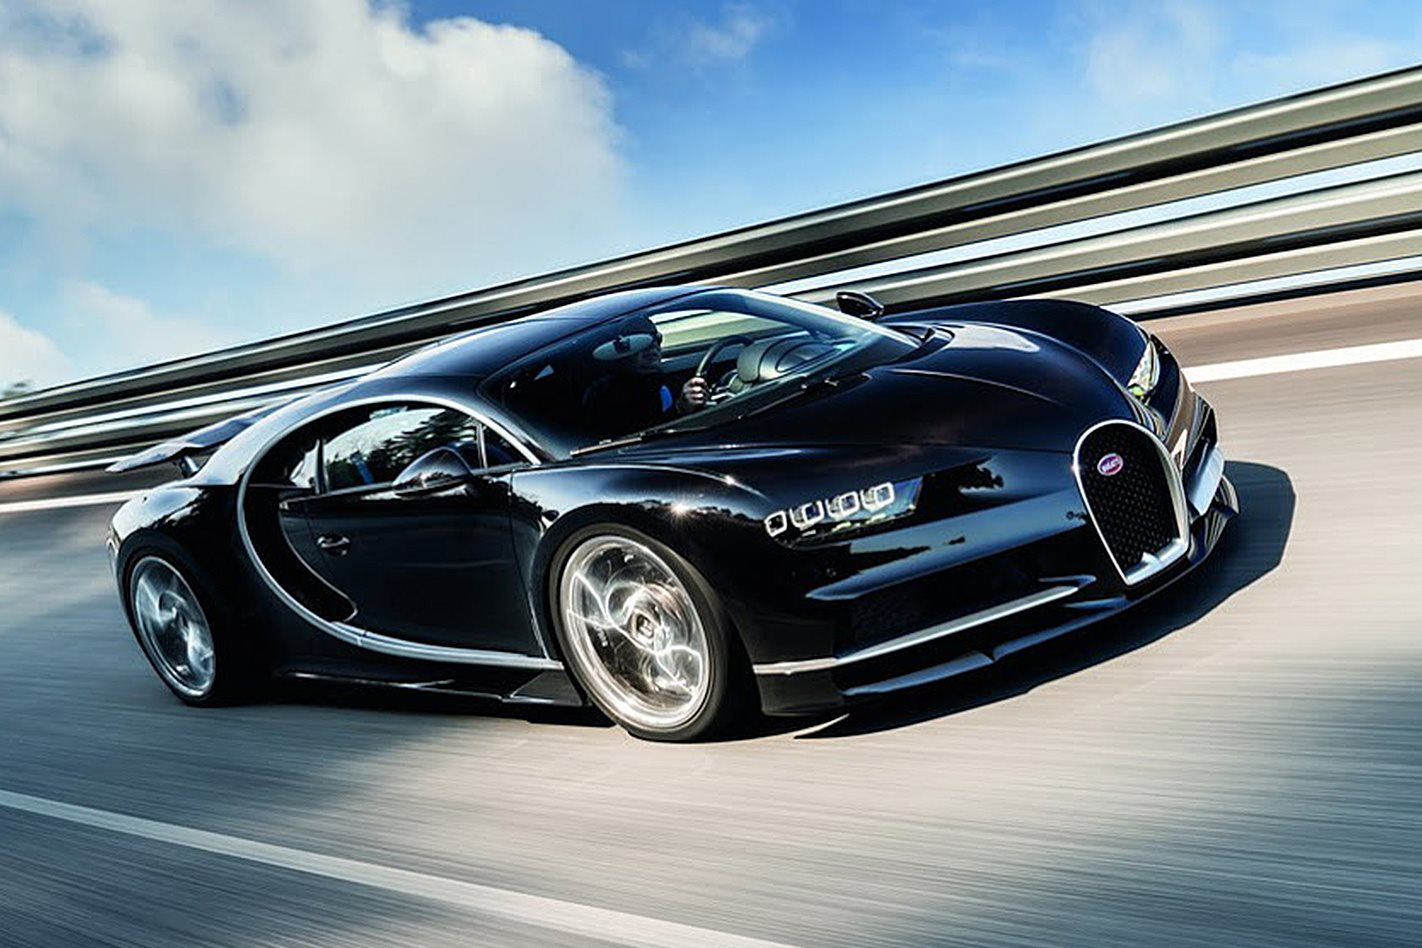 2016 geneva motor show 2017 bugatti chiron revealed wheels. Black Bedroom Furniture Sets. Home Design Ideas